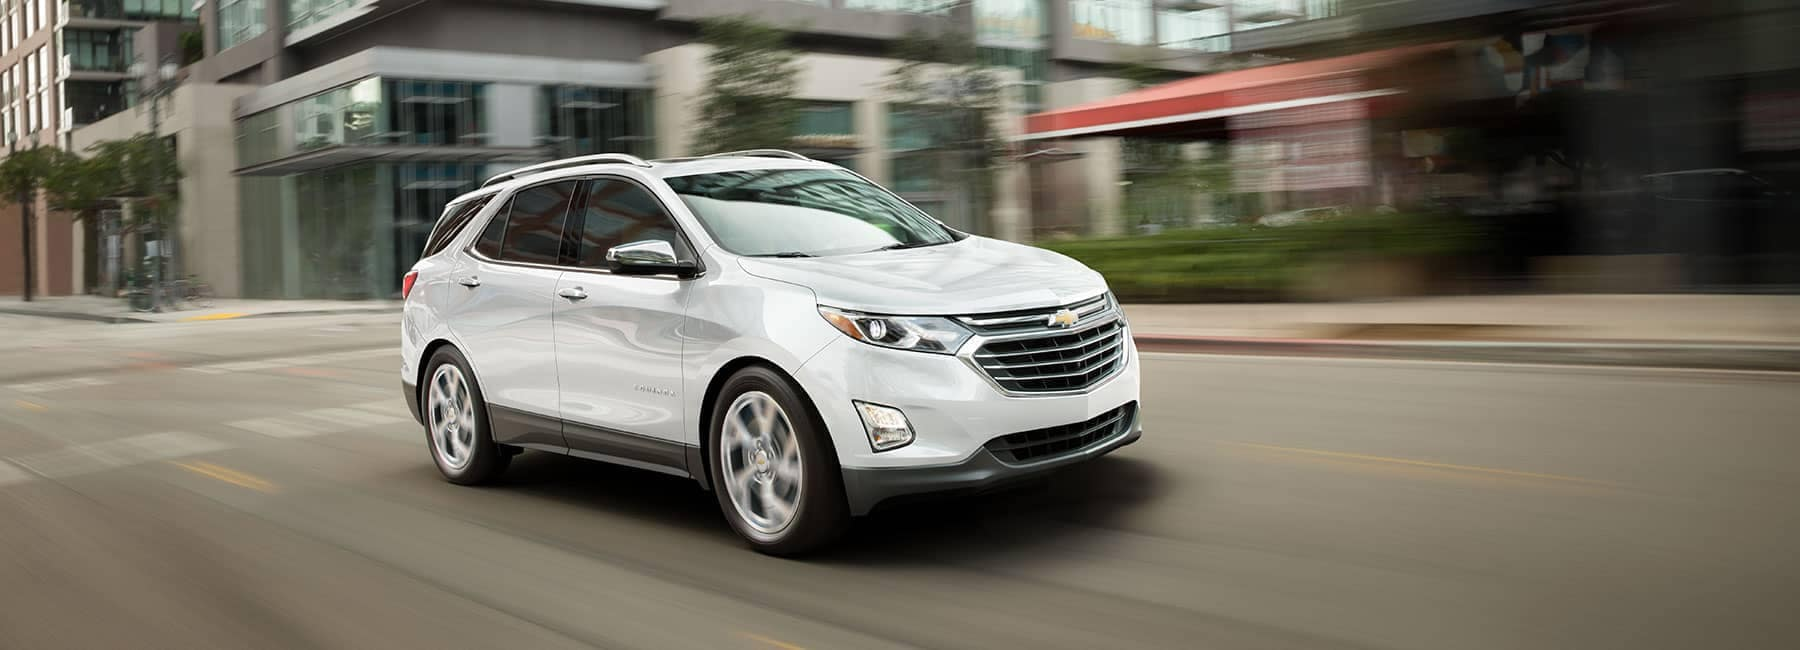 White 2019 Chevrolet Equinox Driving on City Street Angled View